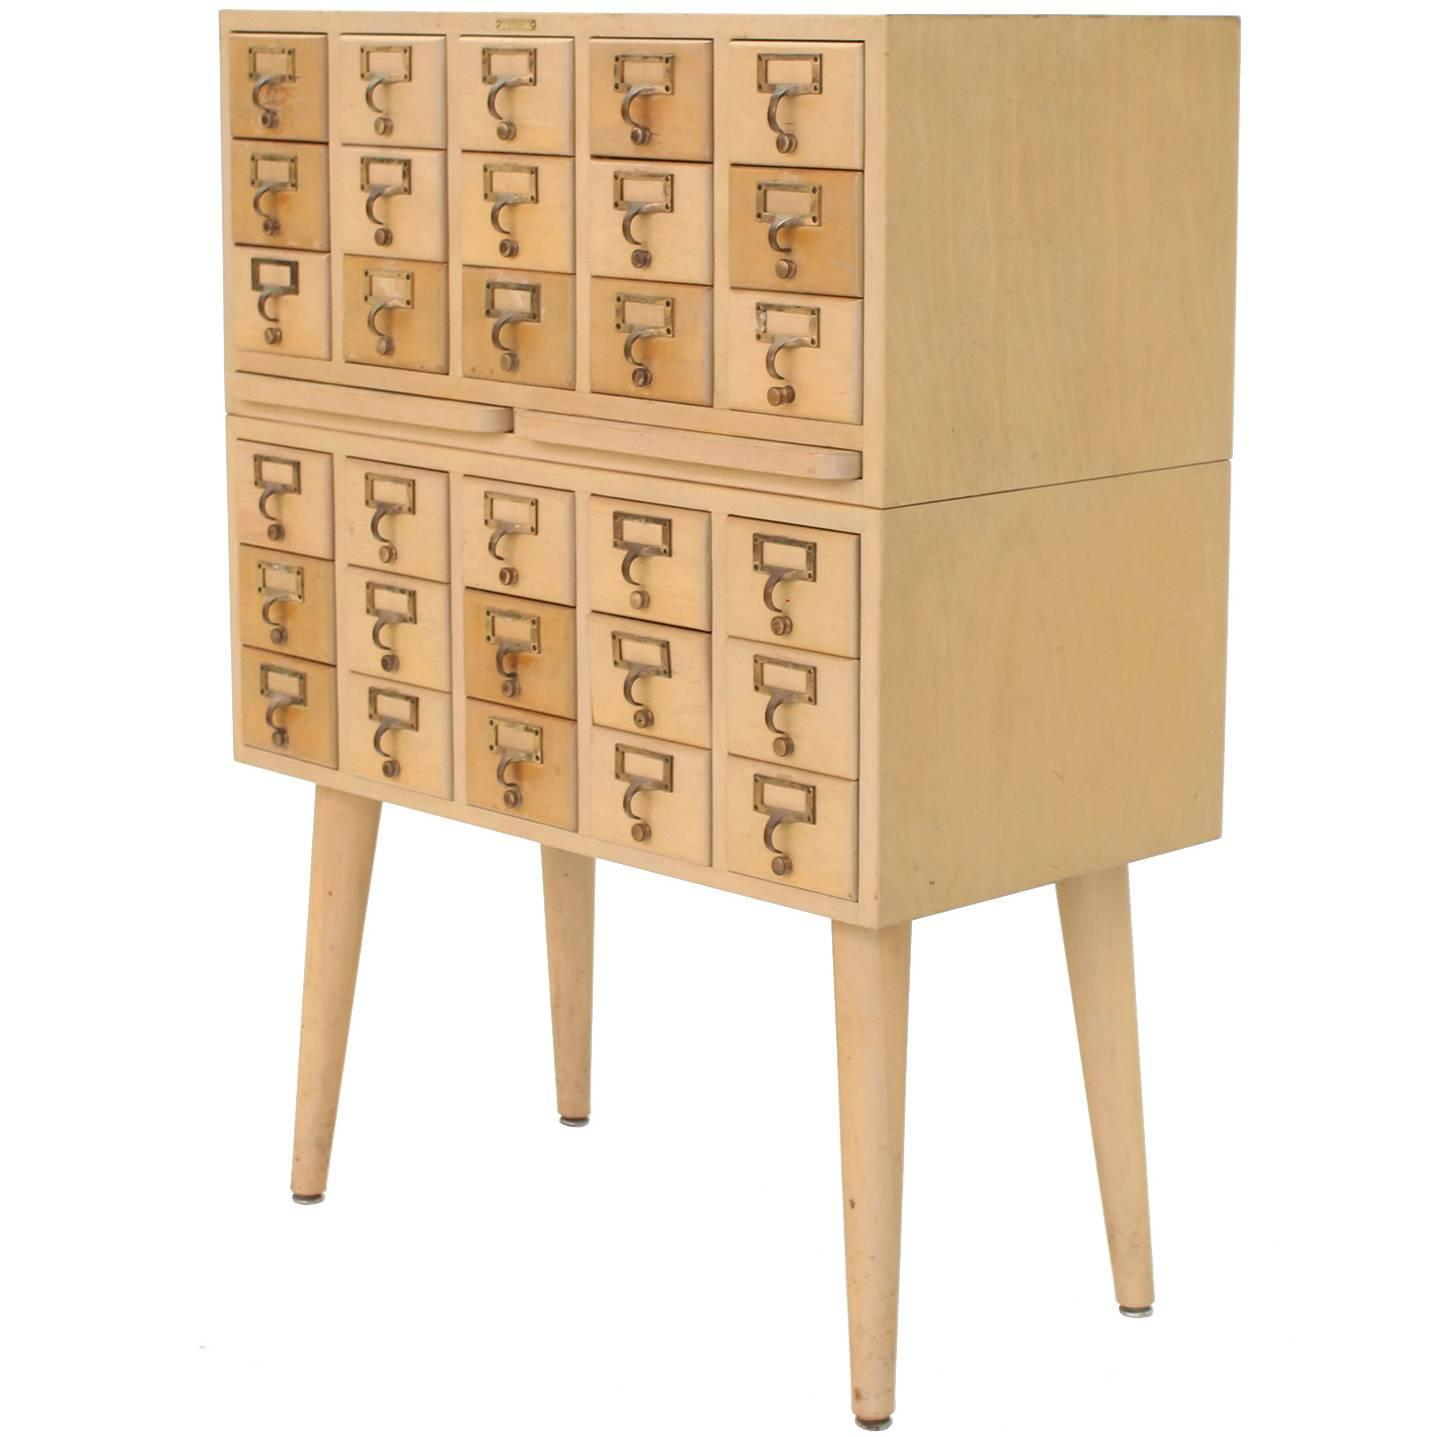 Outstanding vintage all wood index card file cabinet for